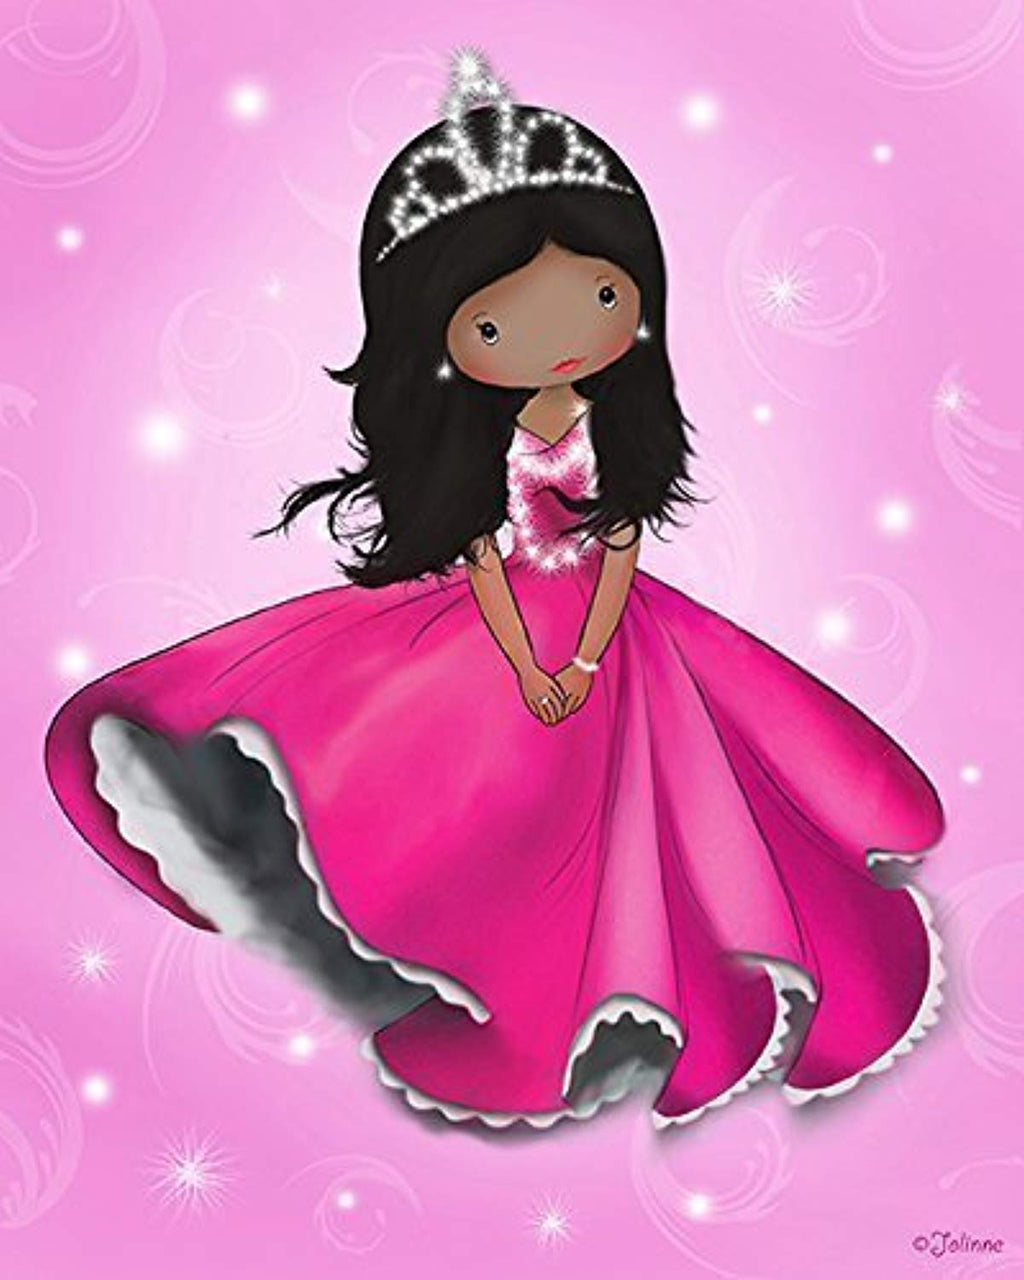 "African American Princess Poster for the Nursery Kids Bedroom Wall Decor Pink Unframed 8""x10"" Art Print Children's Room Dark Skin Black Hair Girl - Ufumbuzi - Home"